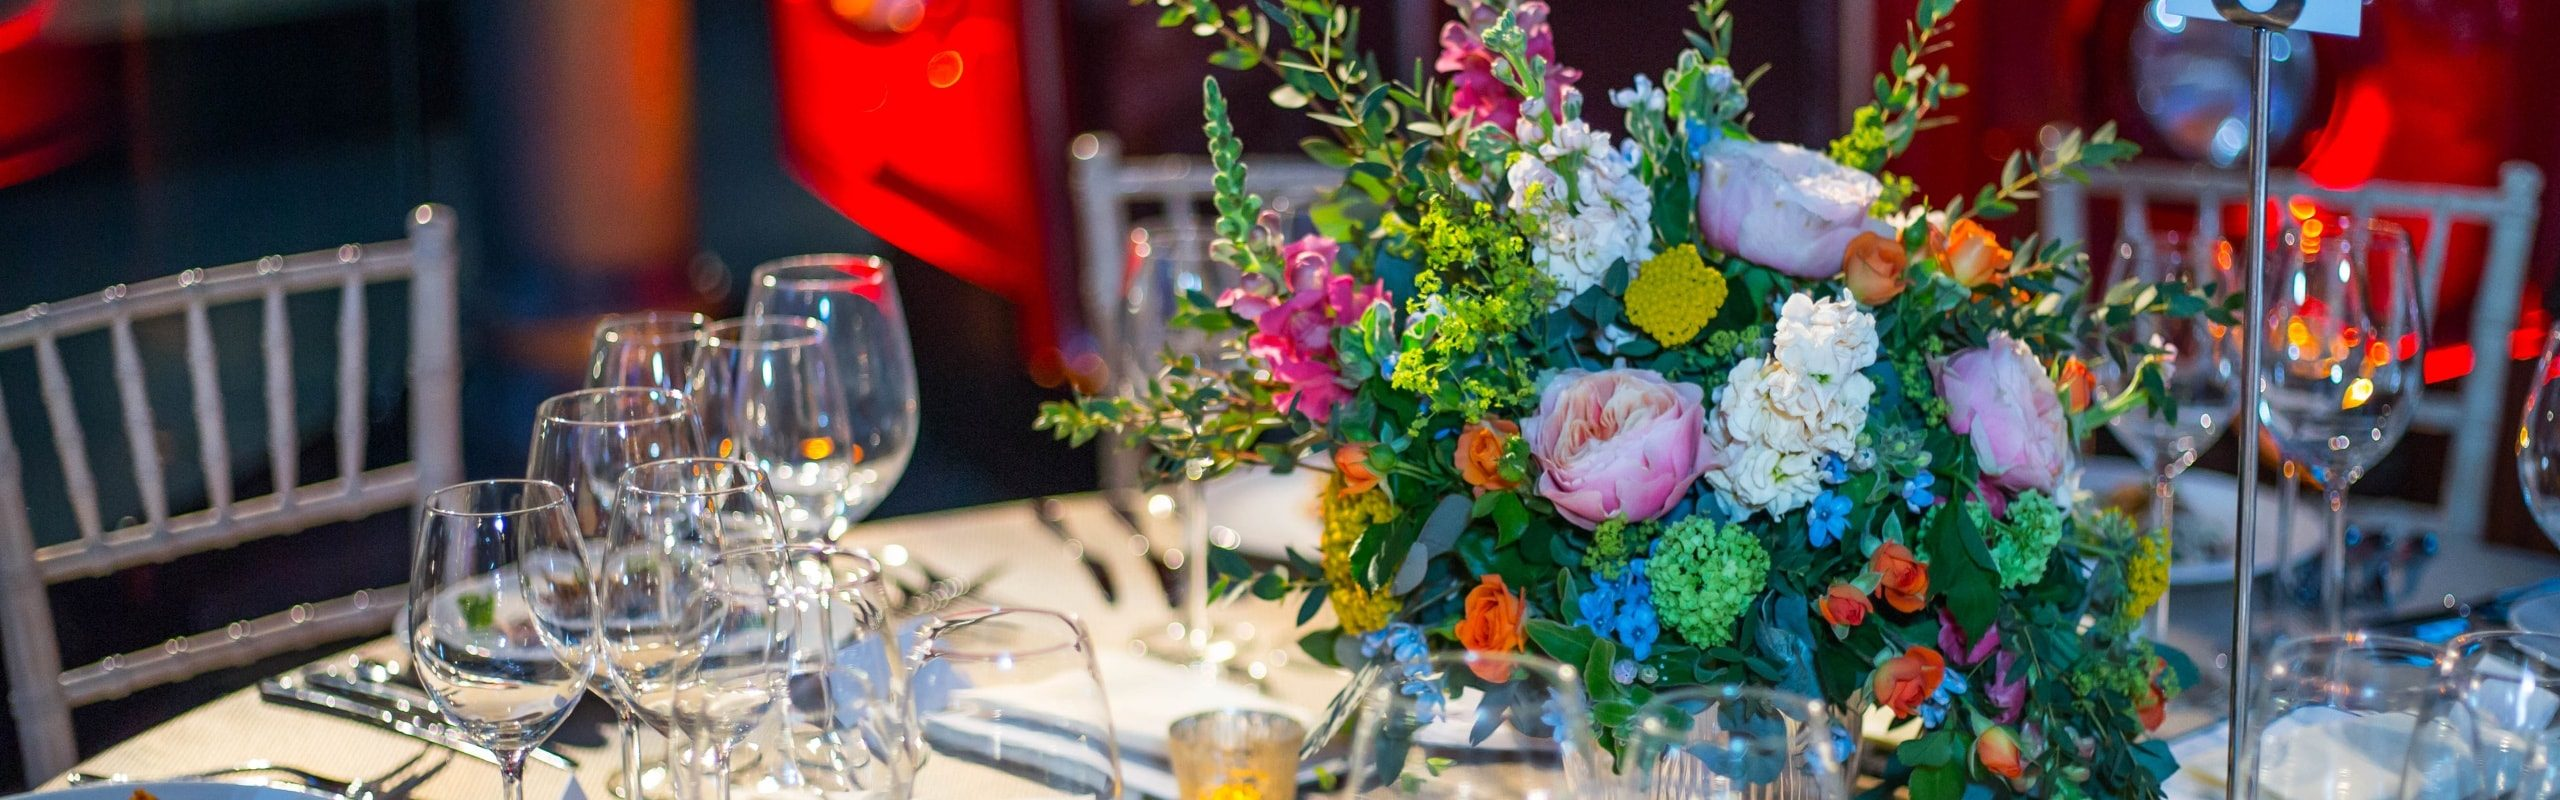 flowers and glasses at the table